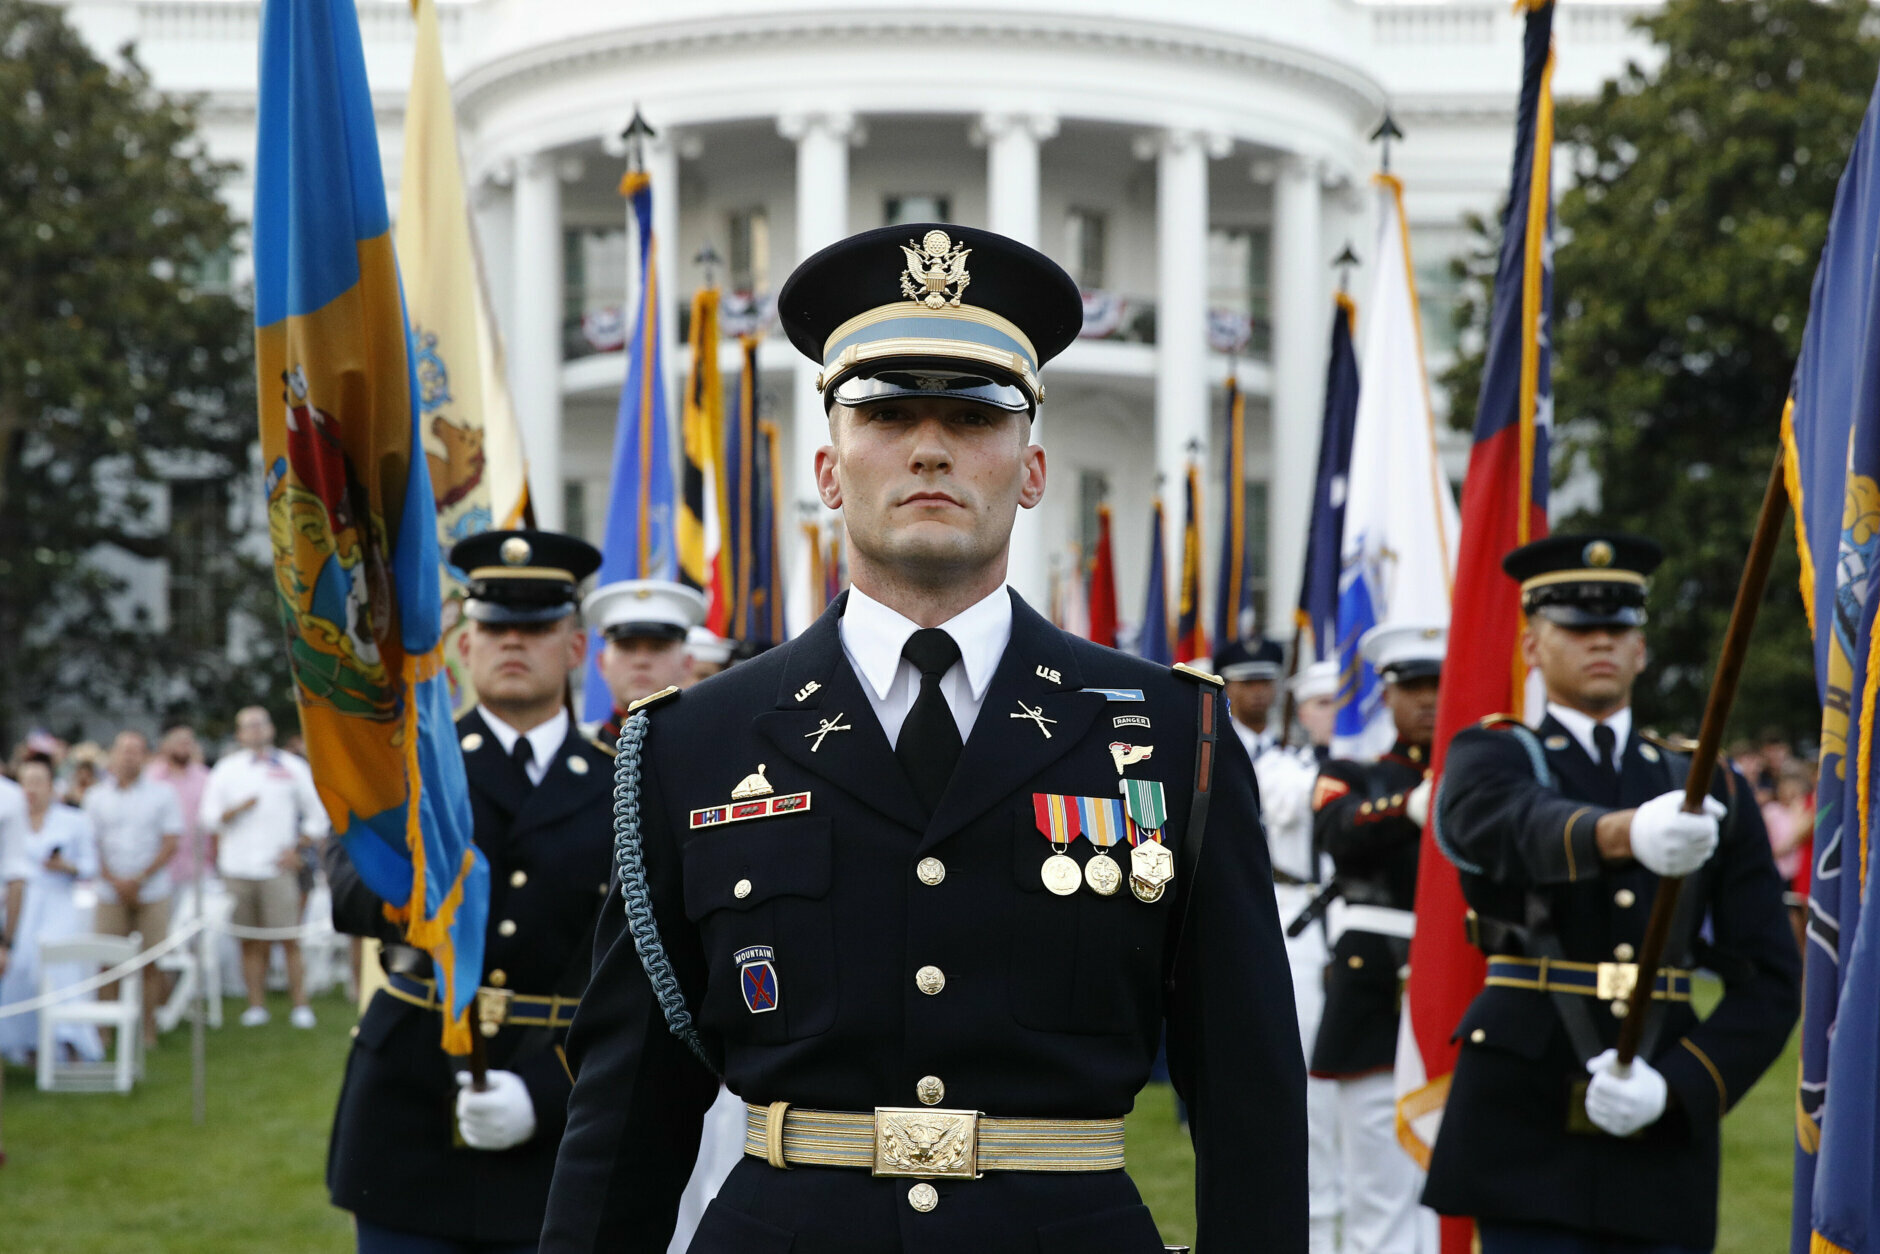 """Service members stand on the South Lawn of the White House during a """"Salute to America"""" event with President Donald Trump and first lady Melania Trump on the South Lawn of the White House, Saturday, July 4, 2020, in Washington. (AP Photo/Patrick Semansky)"""